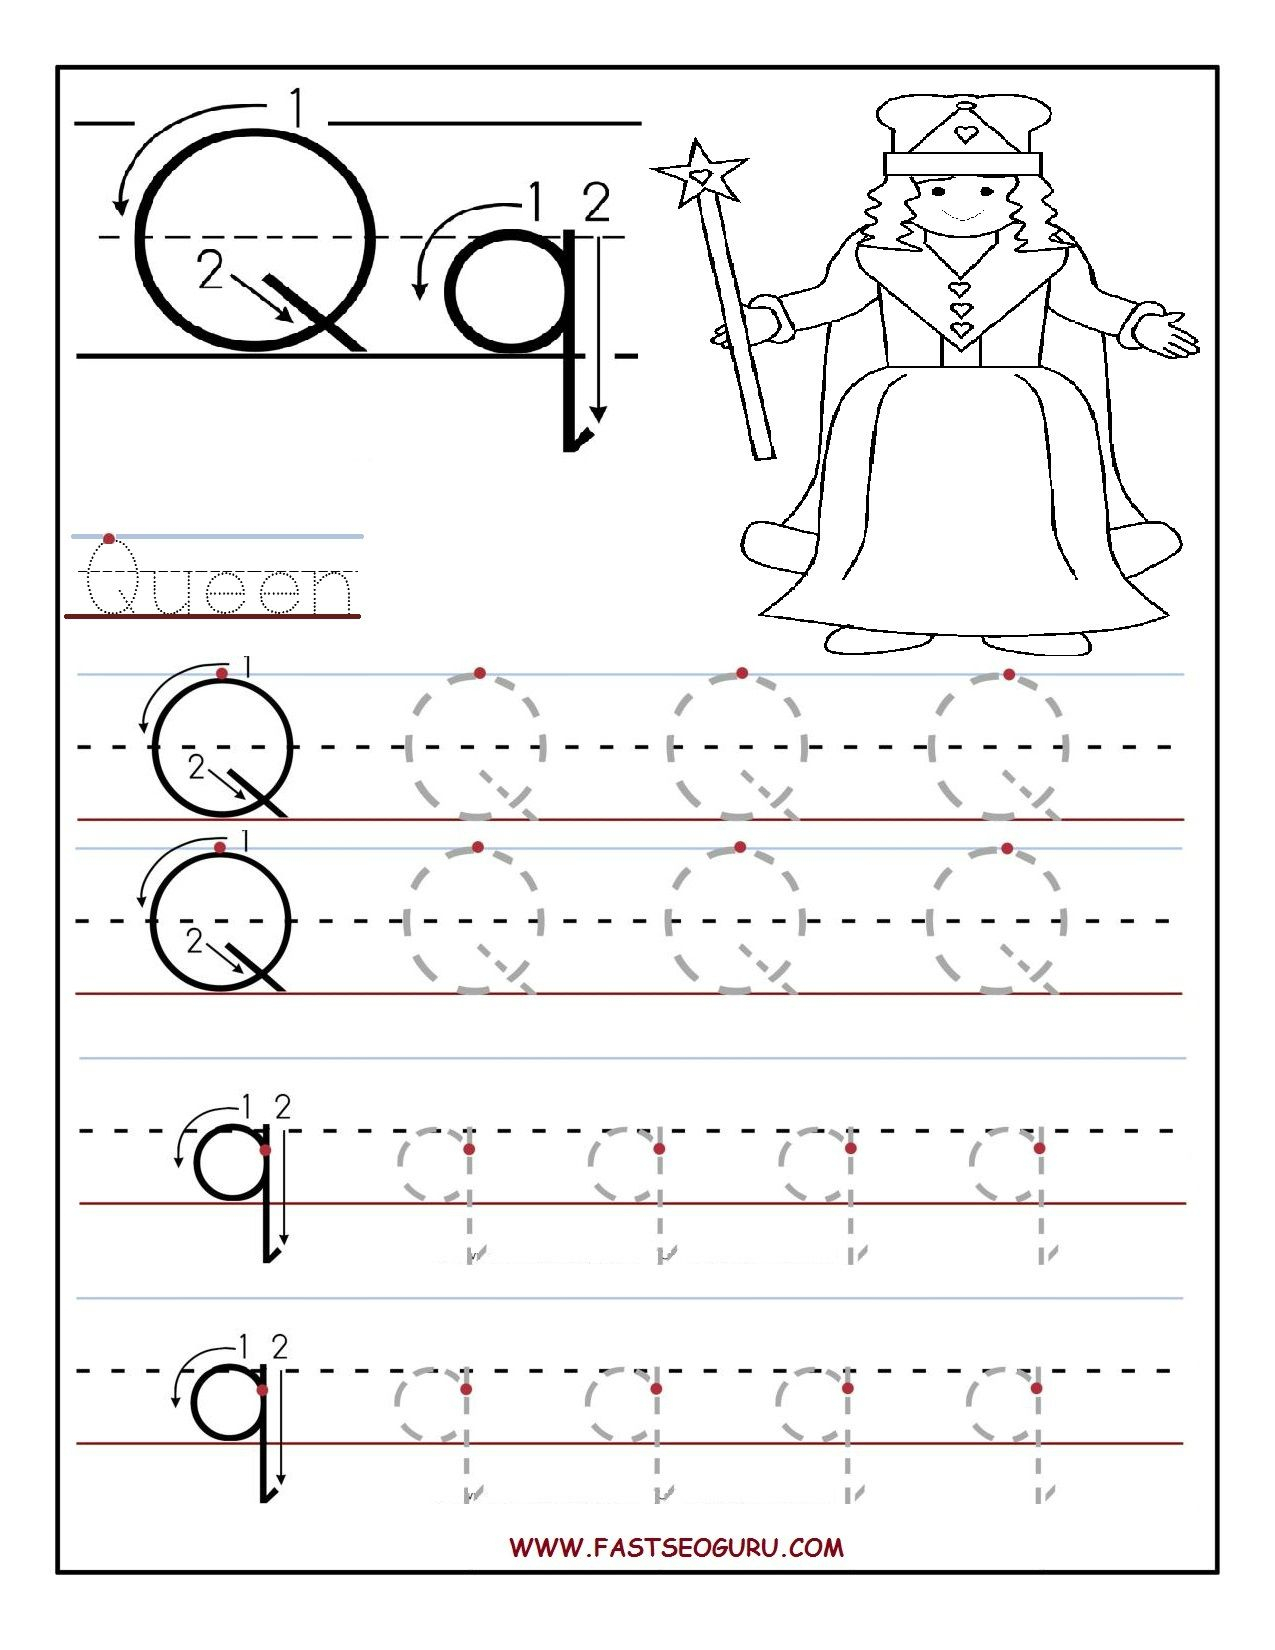 Letter Tracing Worksheets Toddlers